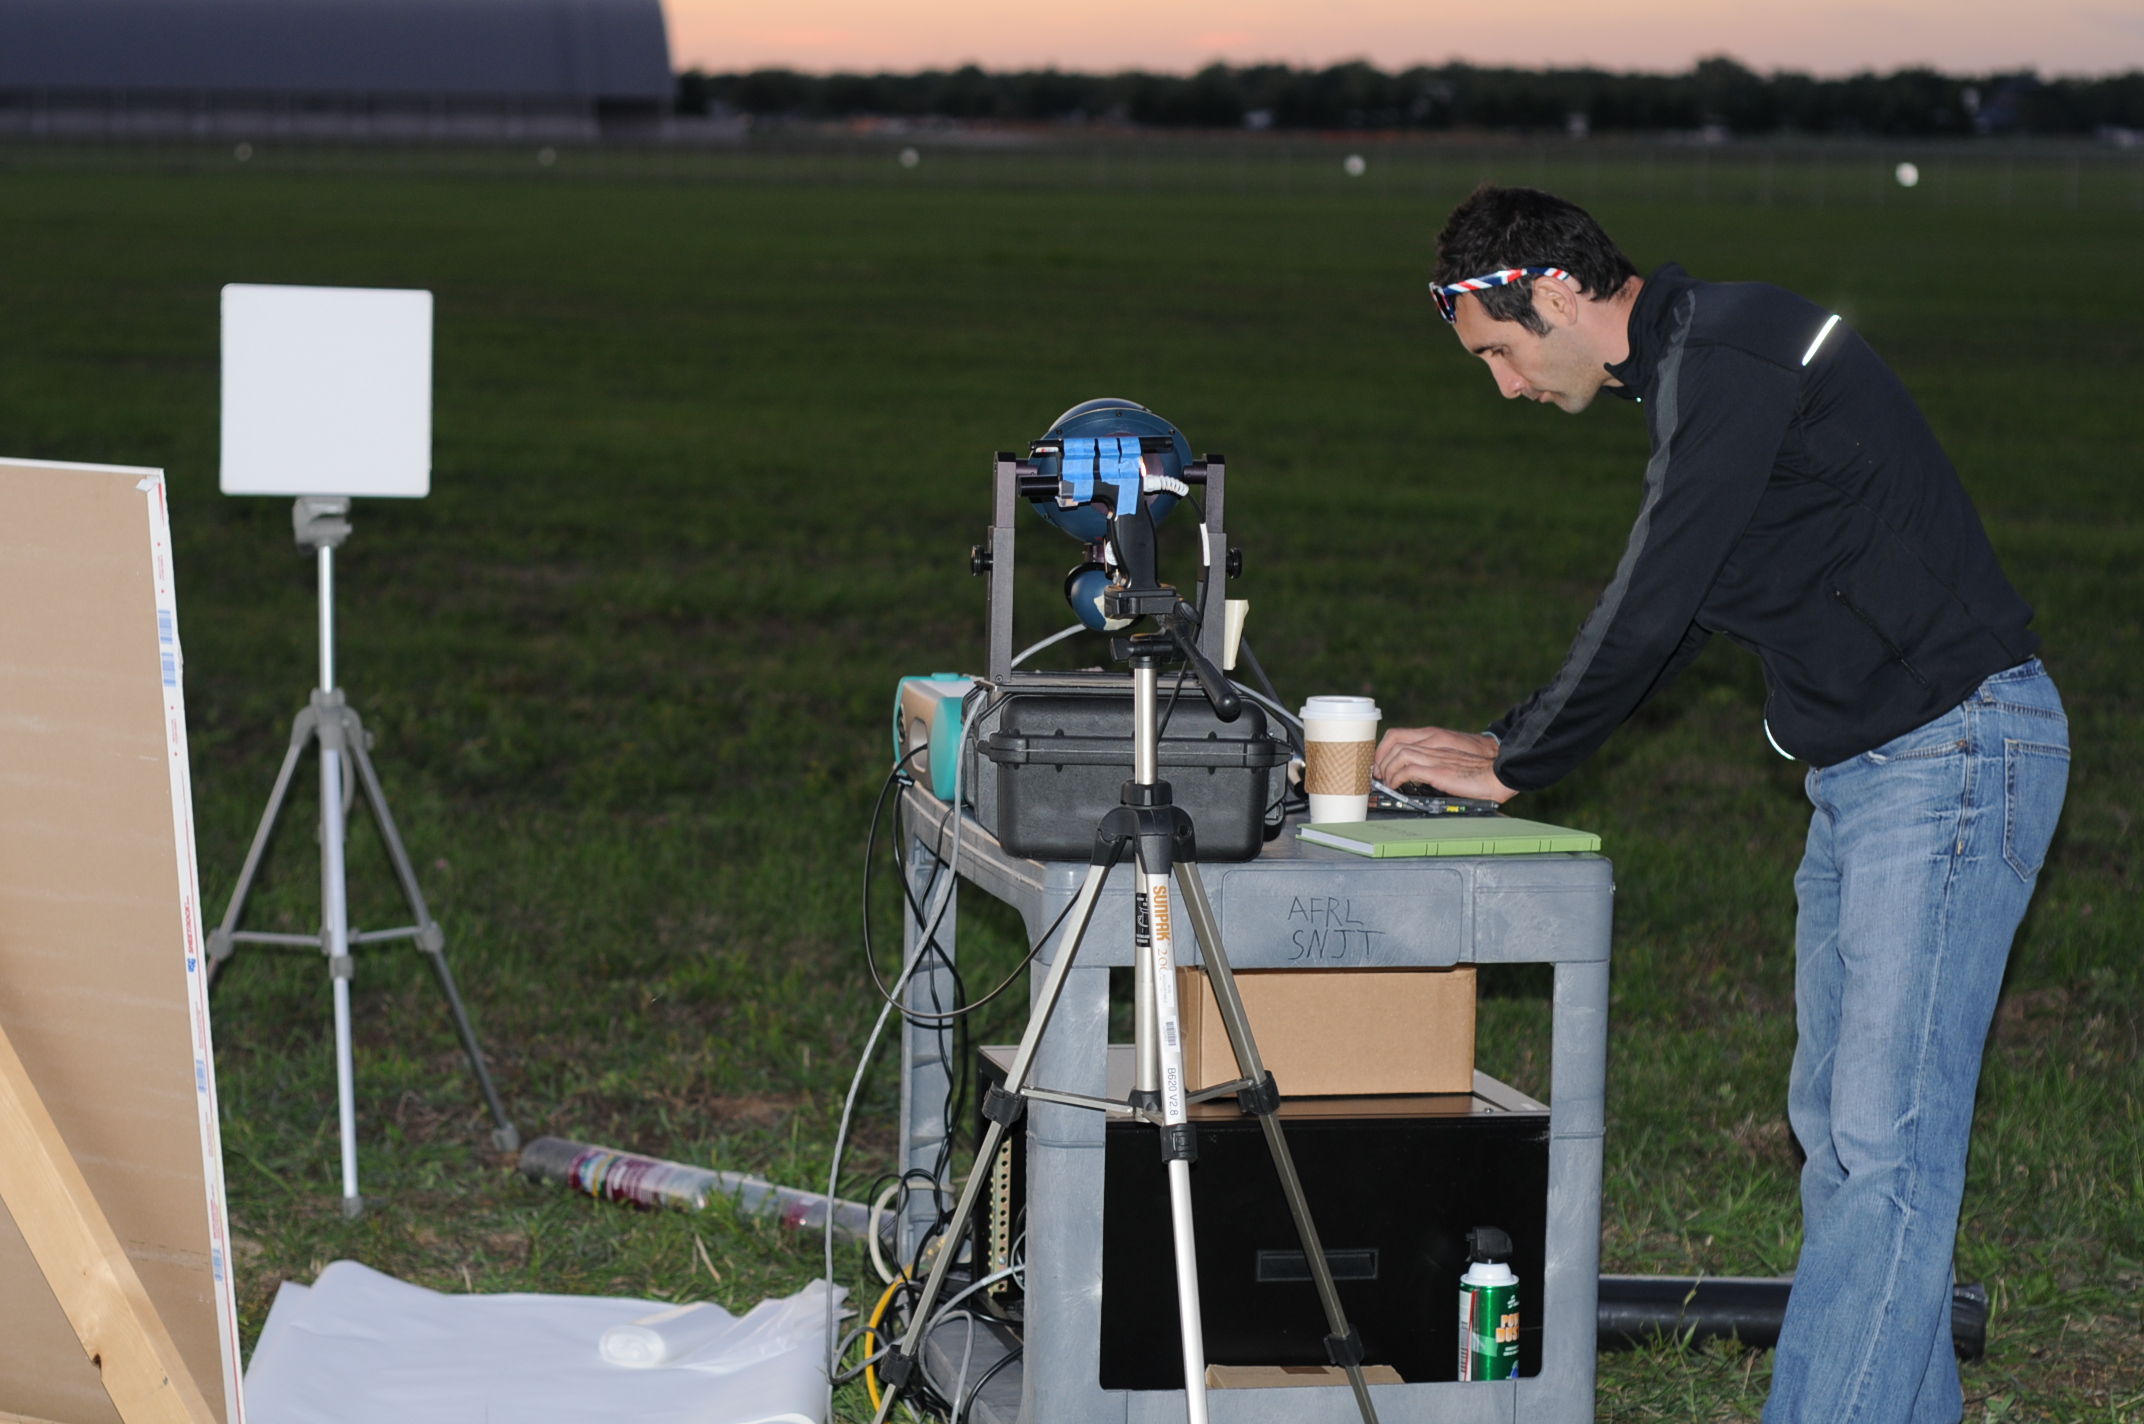 Joseph Meola of Air Force Research Labs conducting measurements on laser light bounced back from various samples placed 1.6 kilometers on the ground from a prototype laser at Wright Patterson Air Force Base. Image credit: Anthony Absi, Air Force Research Labs